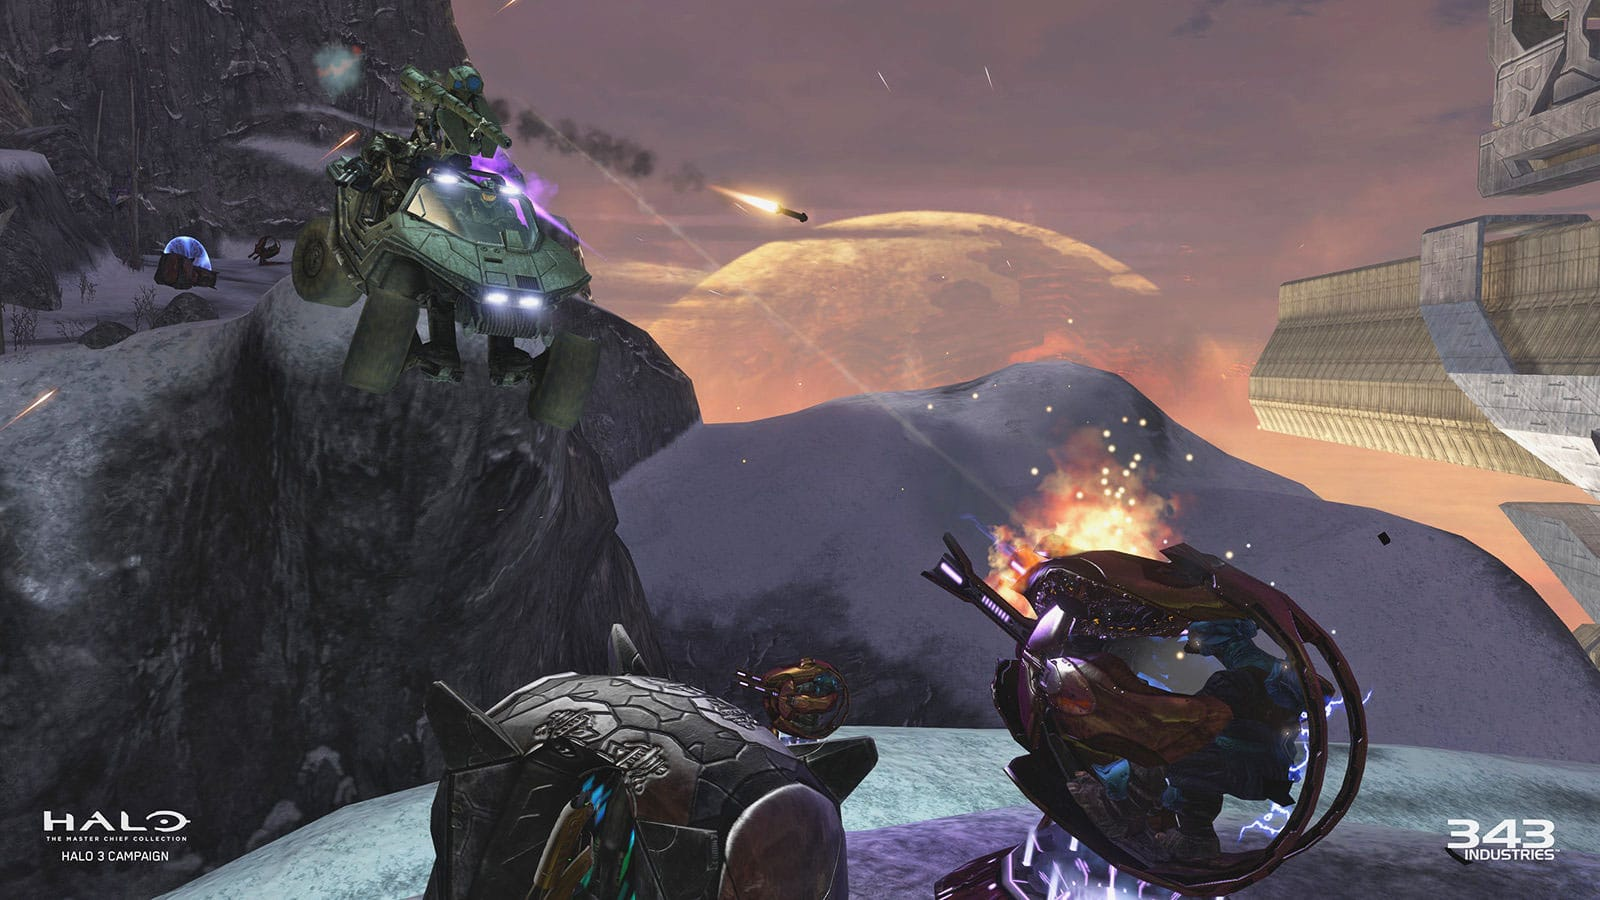 Halo The Master Chief Collection Heads To Pc With Reach